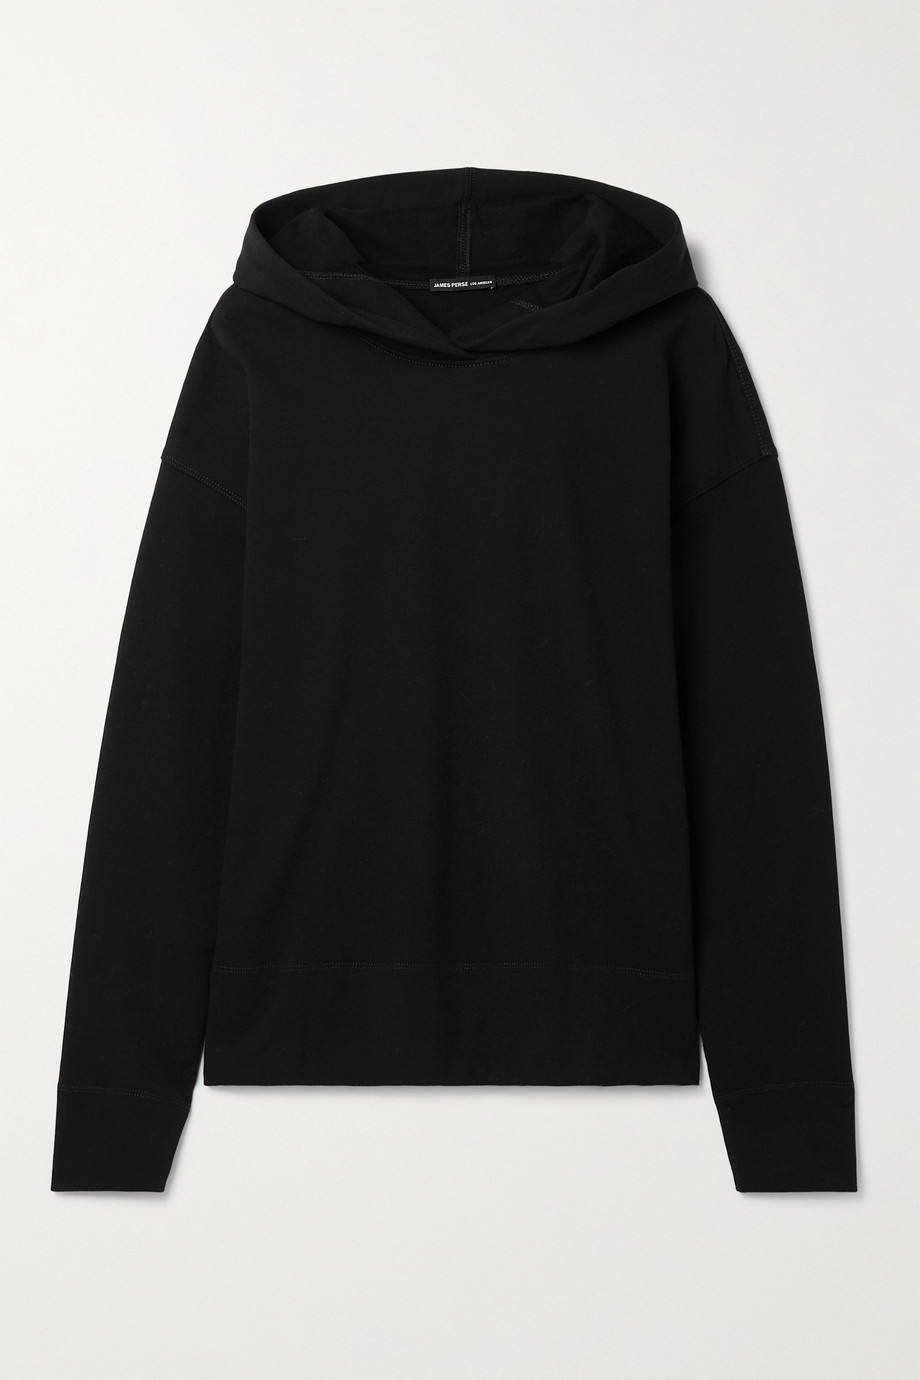 JAMES PERSE Cotton-blend jersey hoodie